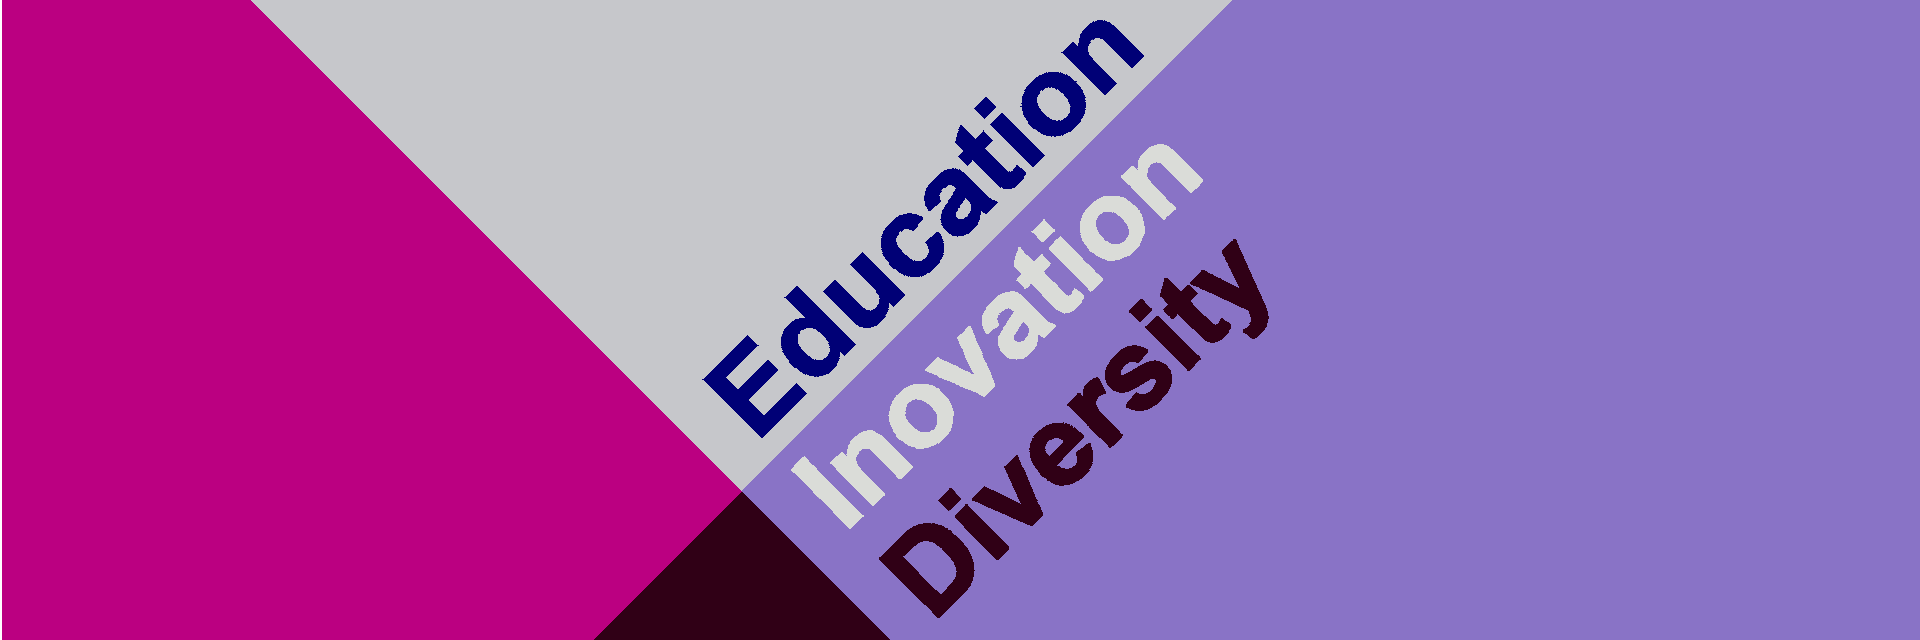 EDUCATION. INNOVATION. DIVERSITY